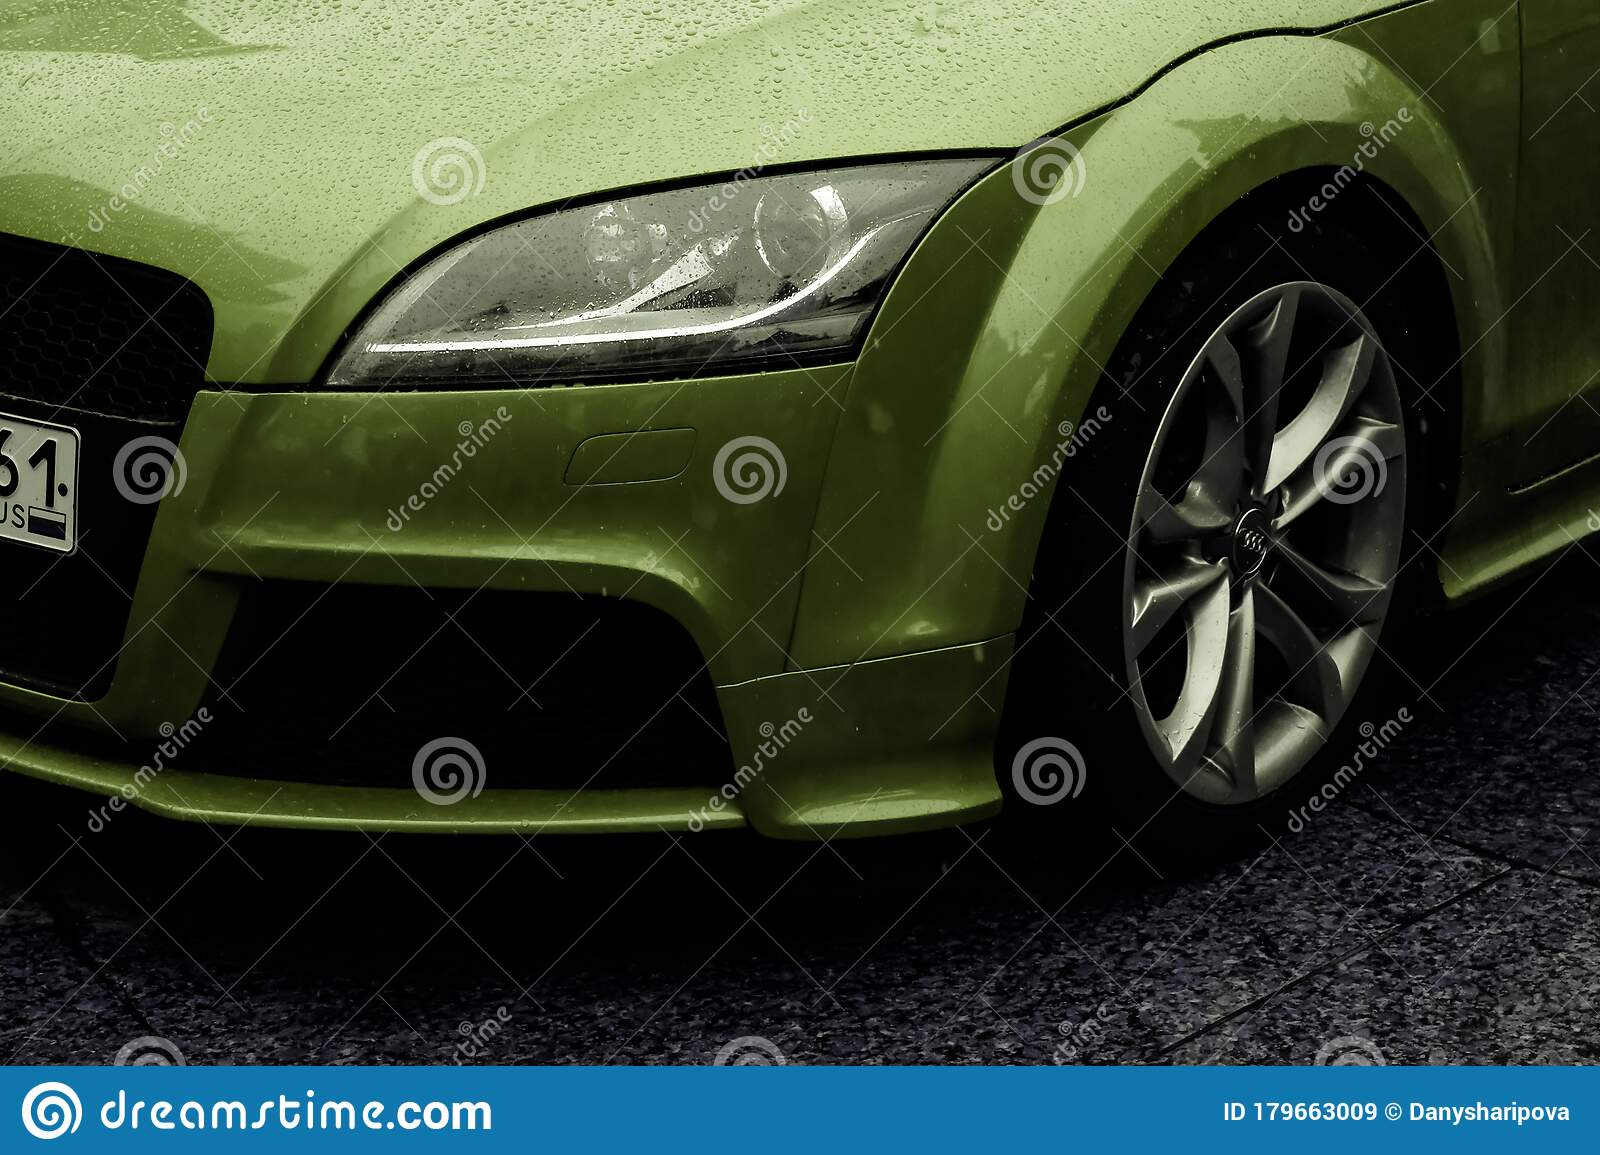 Germany Frankfurt 10 September 2019 Green Audi Tt Rs Coupe S Tronic Detail View Of Steering Wheel With Controls Editorial Stock Image Image Of Auto Automobile 179663009